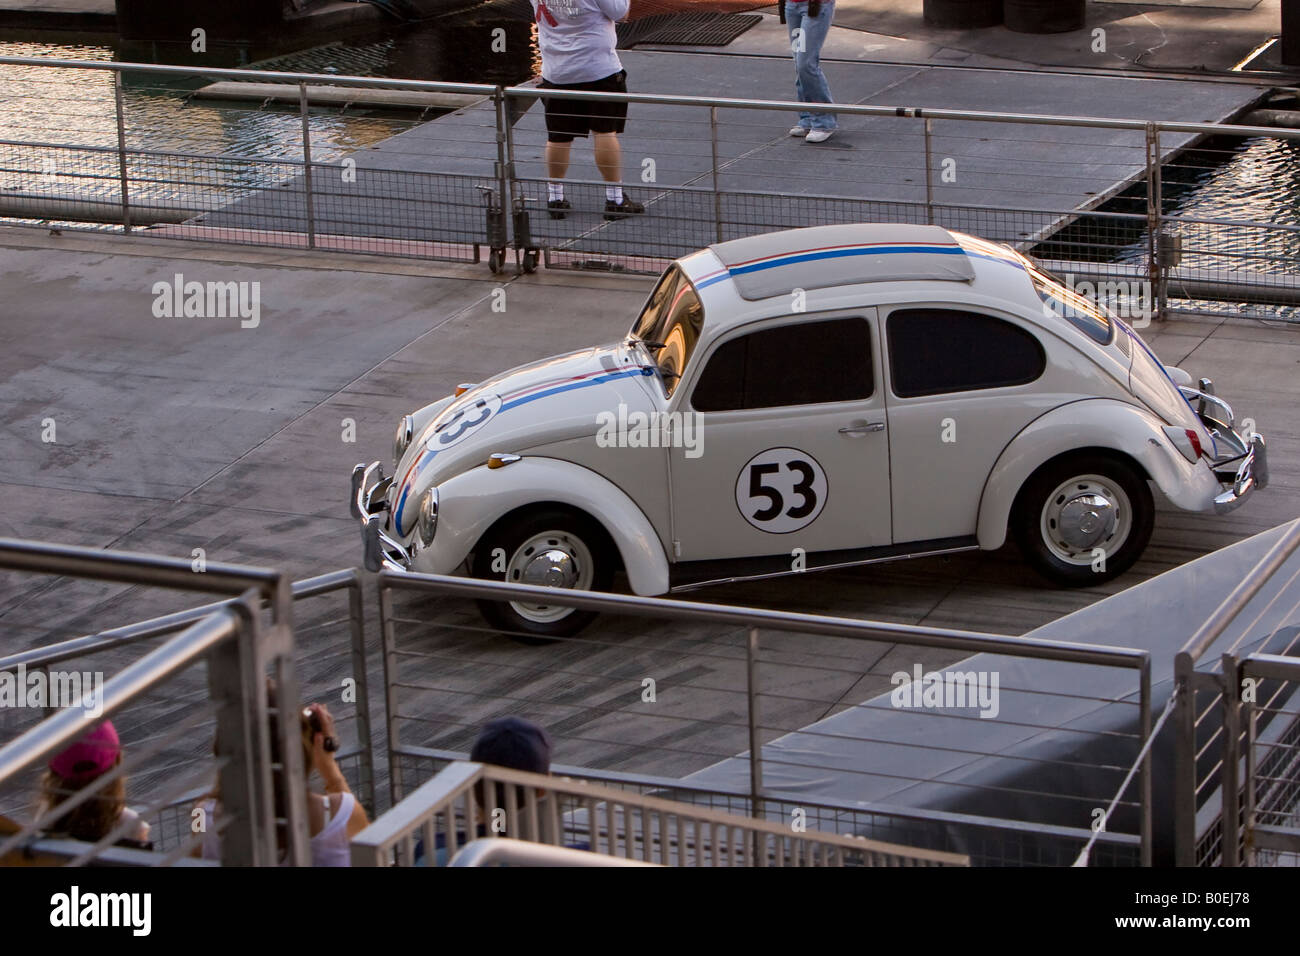 Herbie the Love Bug Volkswagen Car at Disney's Hollywood MGM Studios